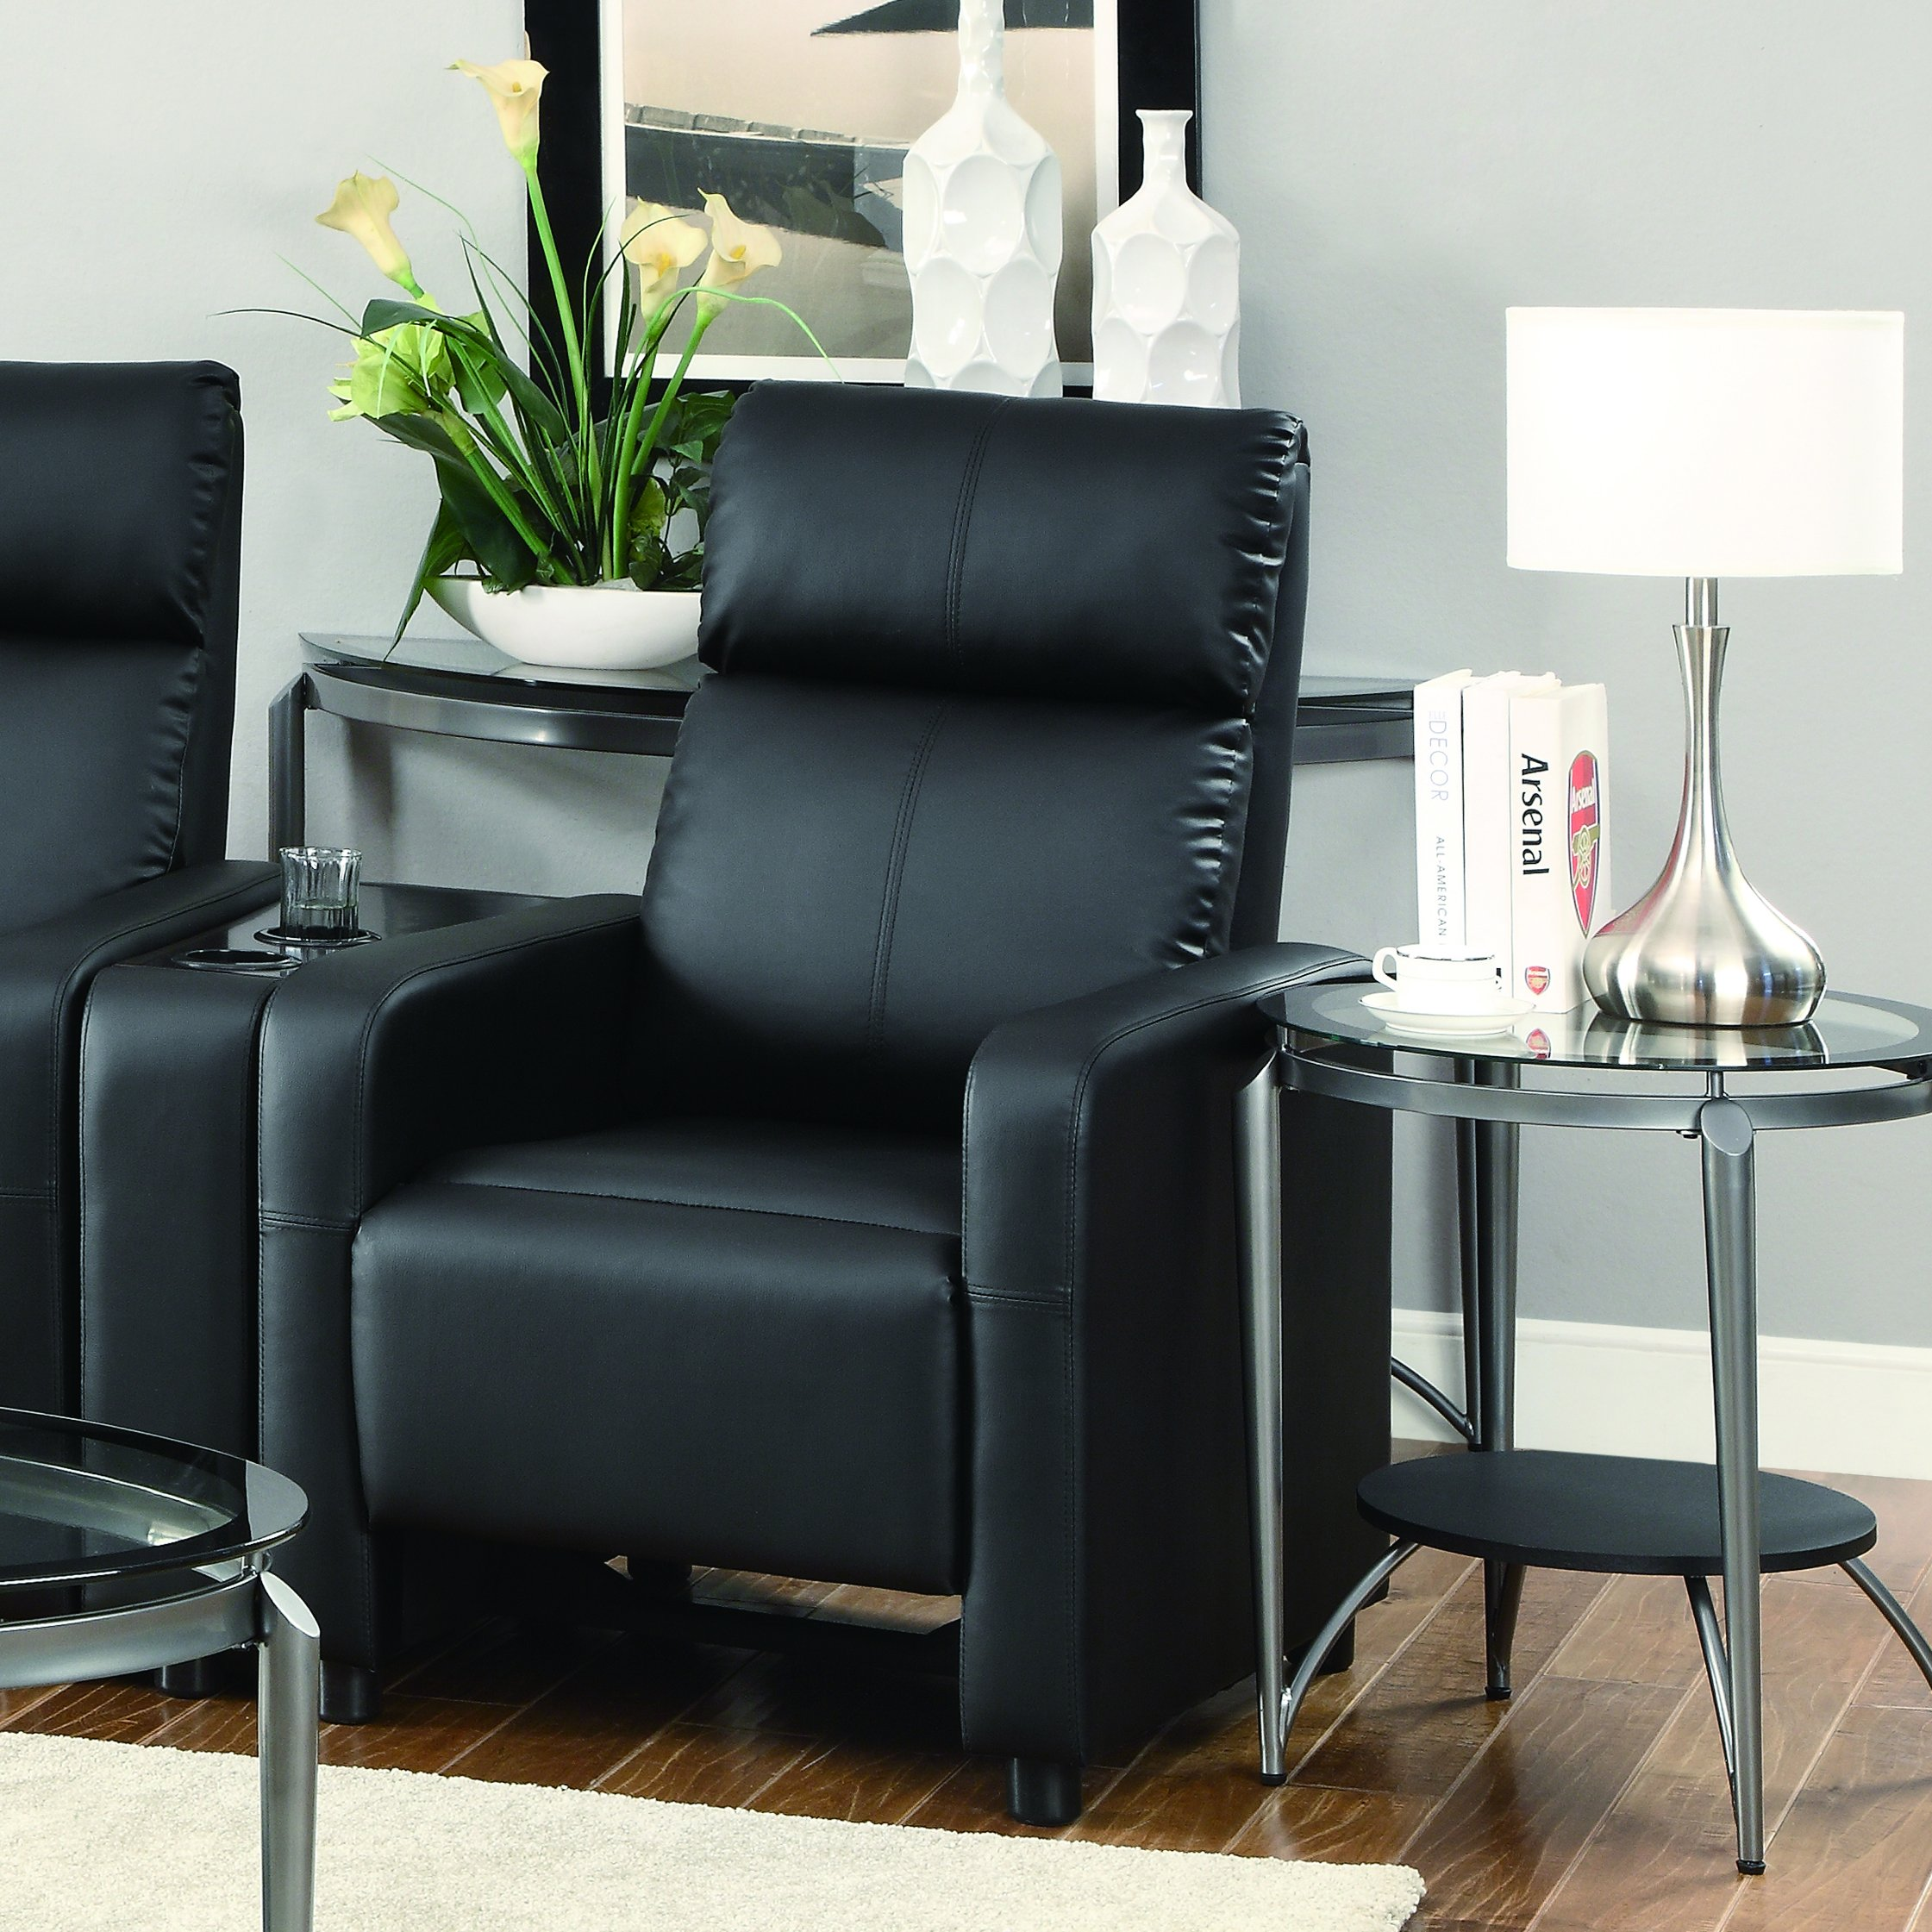 Coaster Home Furnishings Toohey Home Theater Push Back Recliner Black